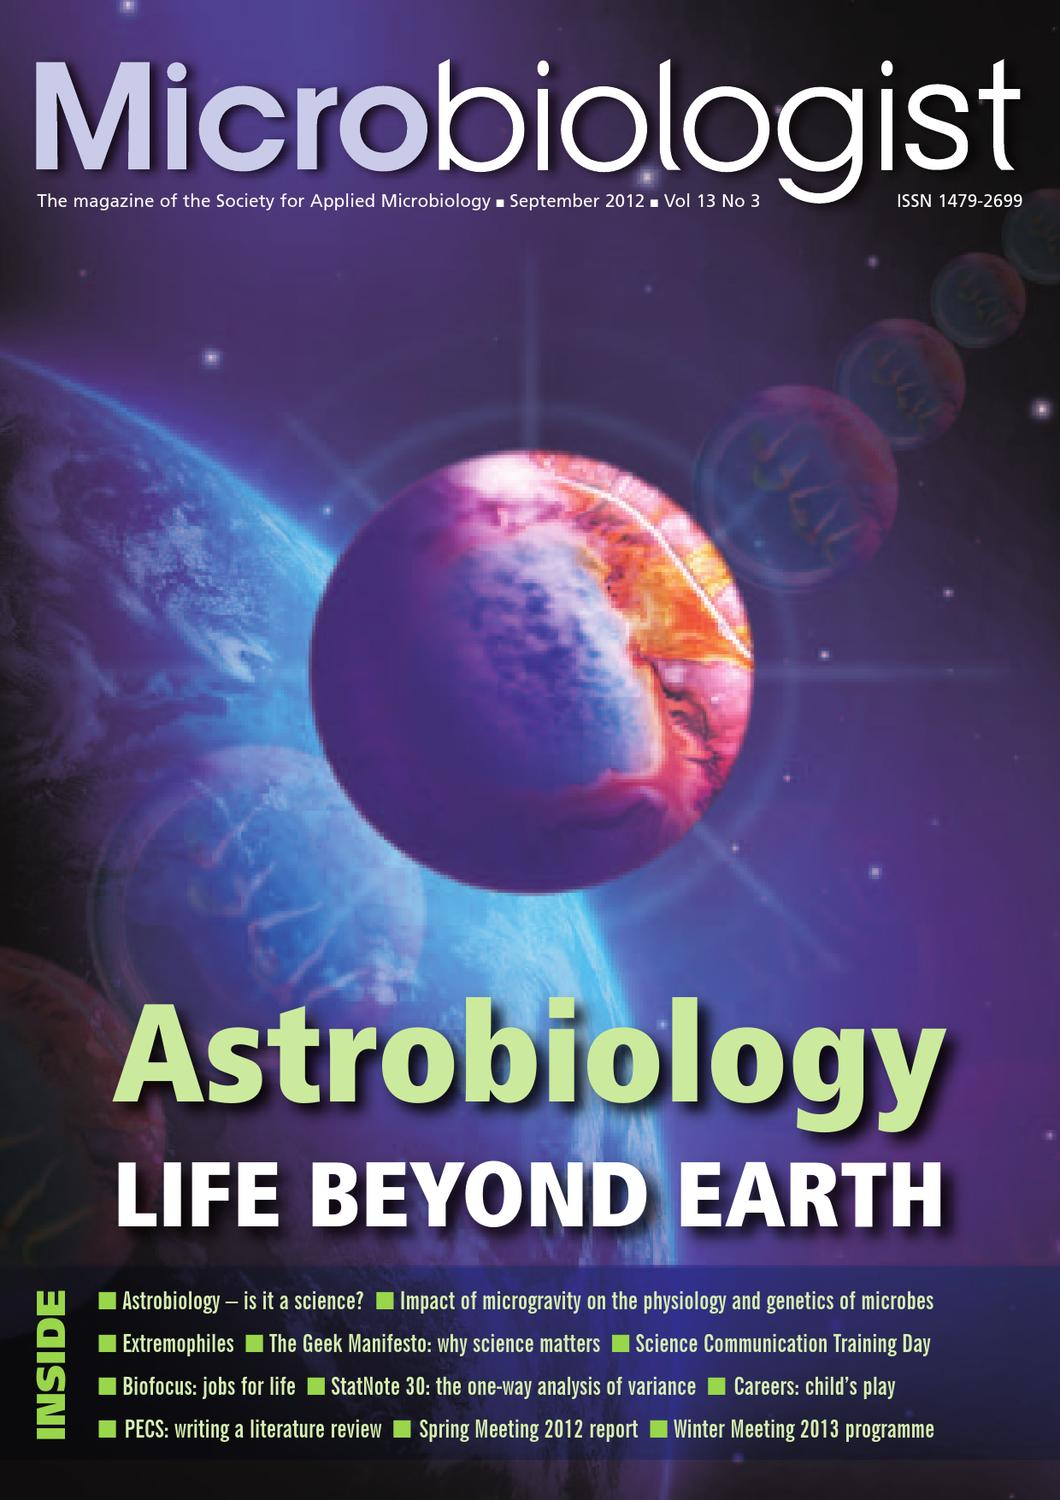 astrobiology notes Ba learning strategies search this site home time management organization learning styles memory note taking reading effectiveness argument analysis.